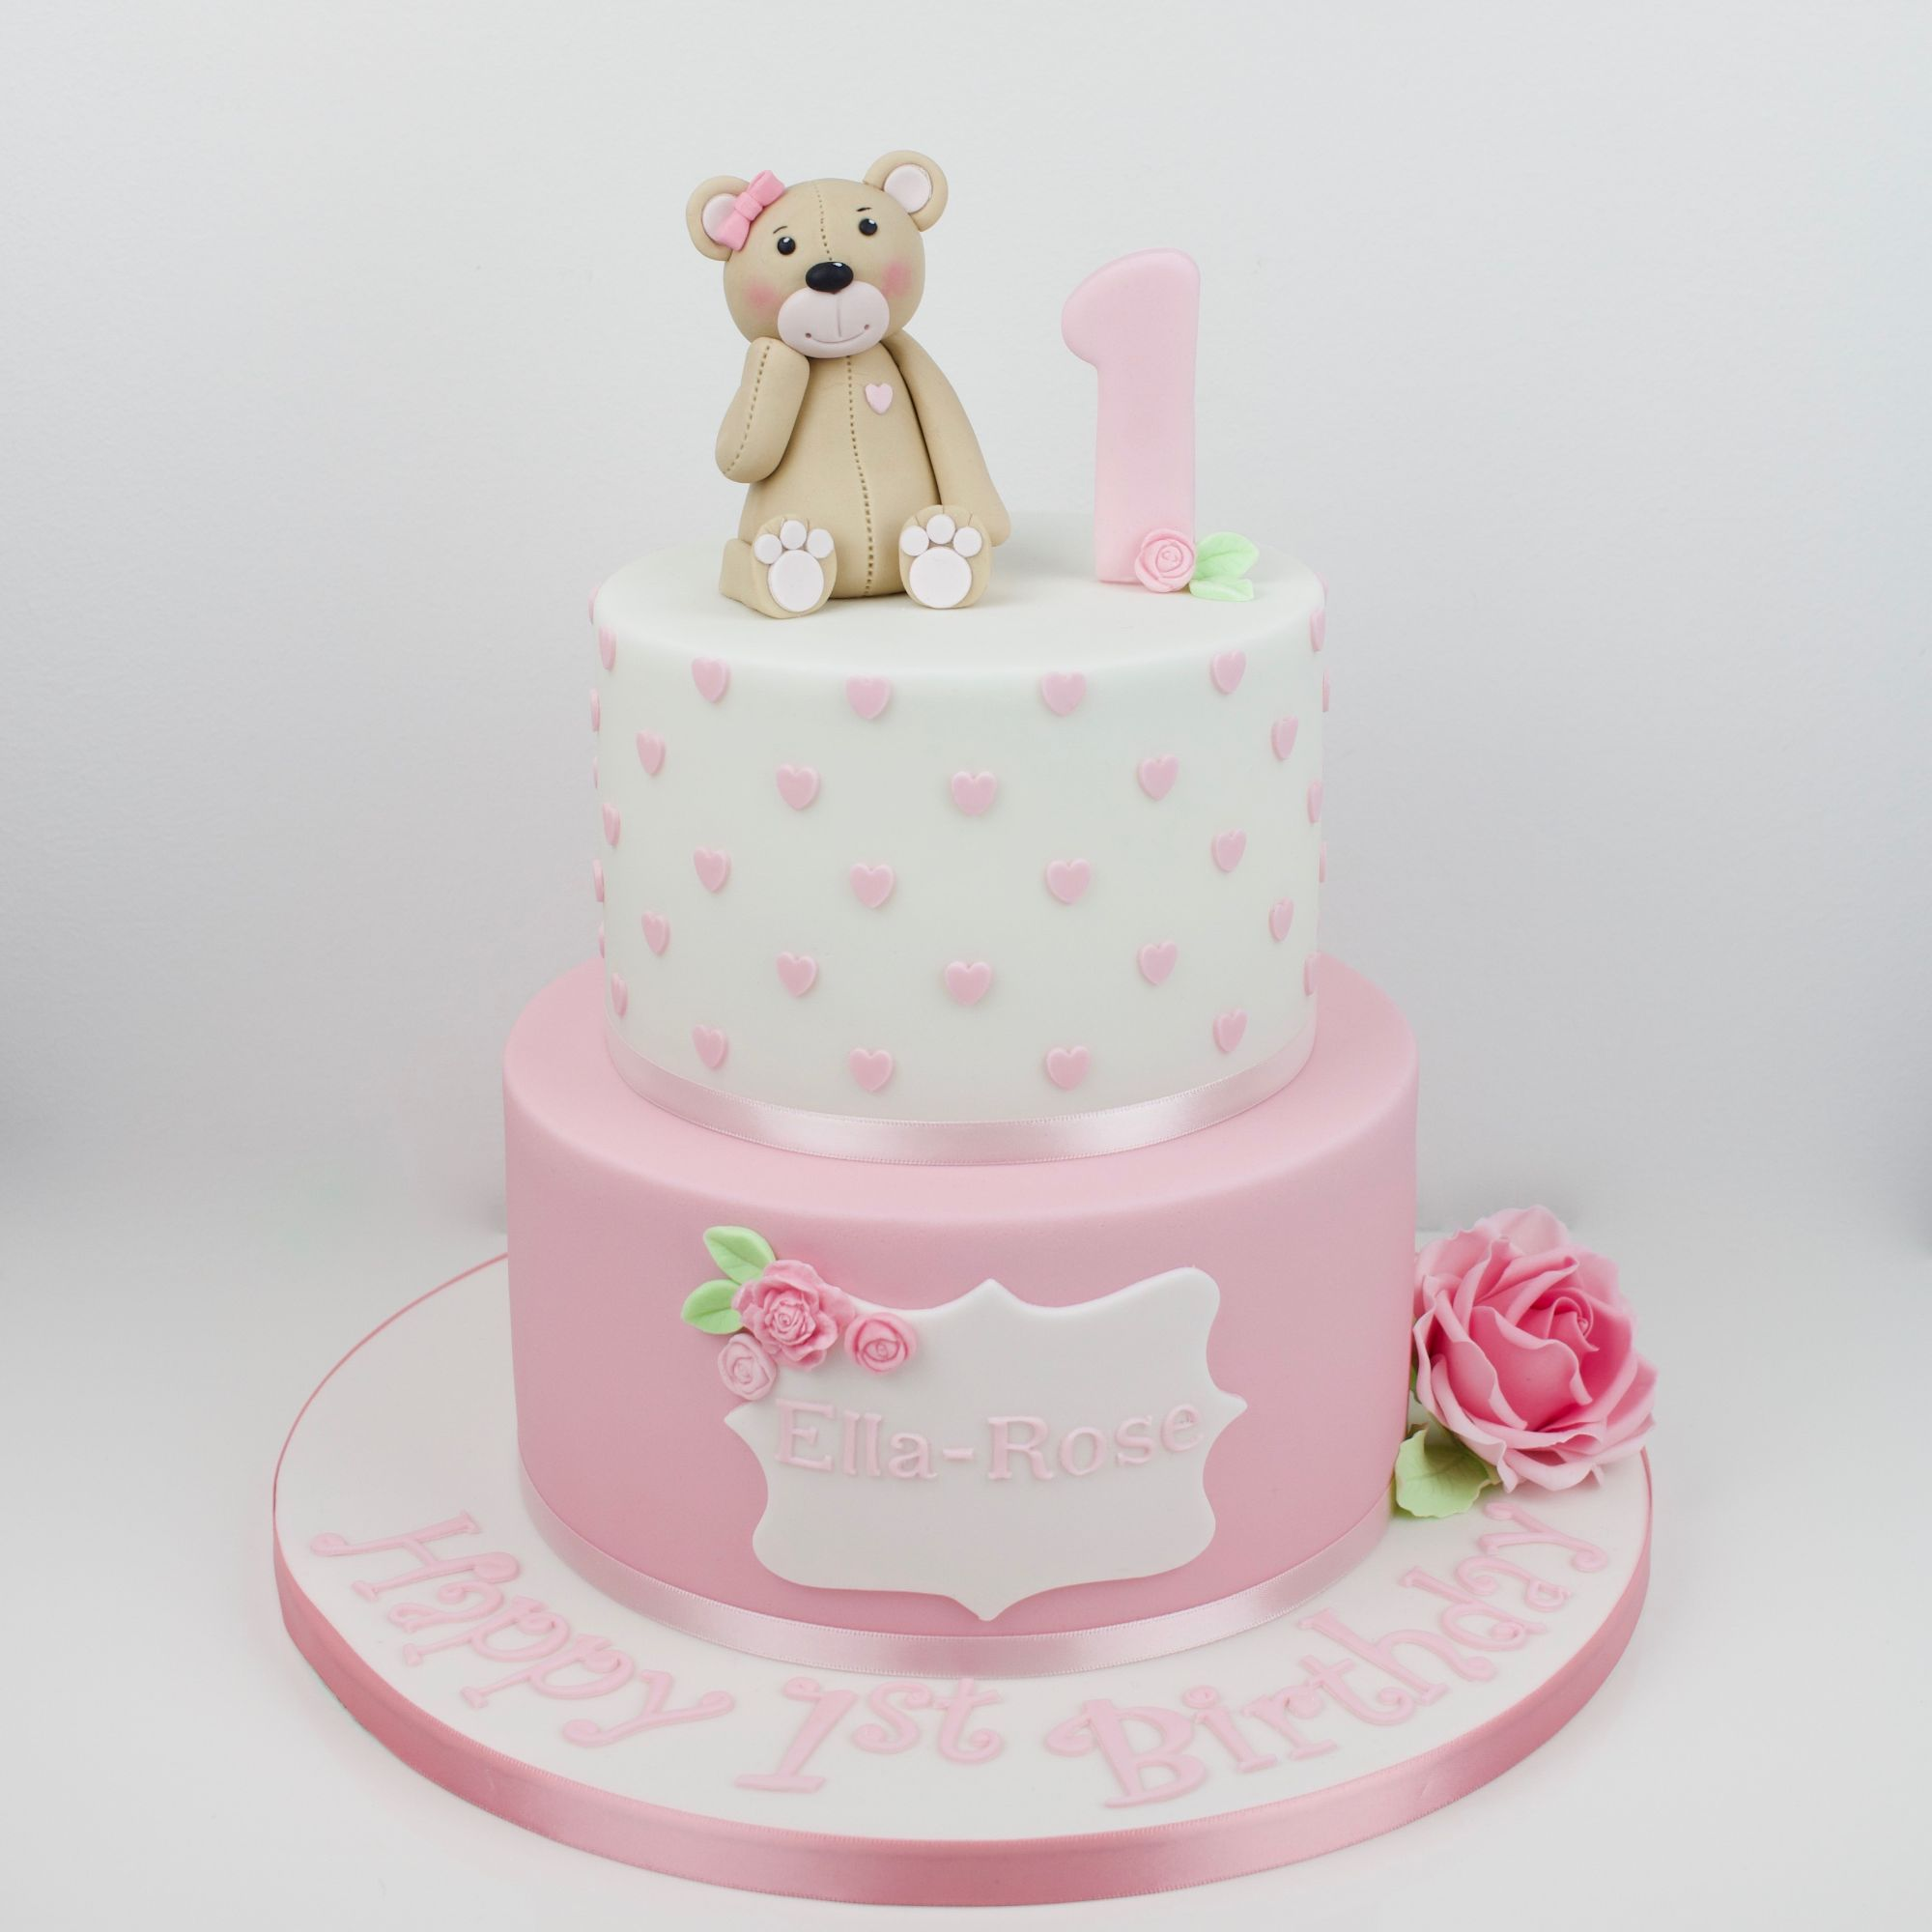 Teddy, rose cake